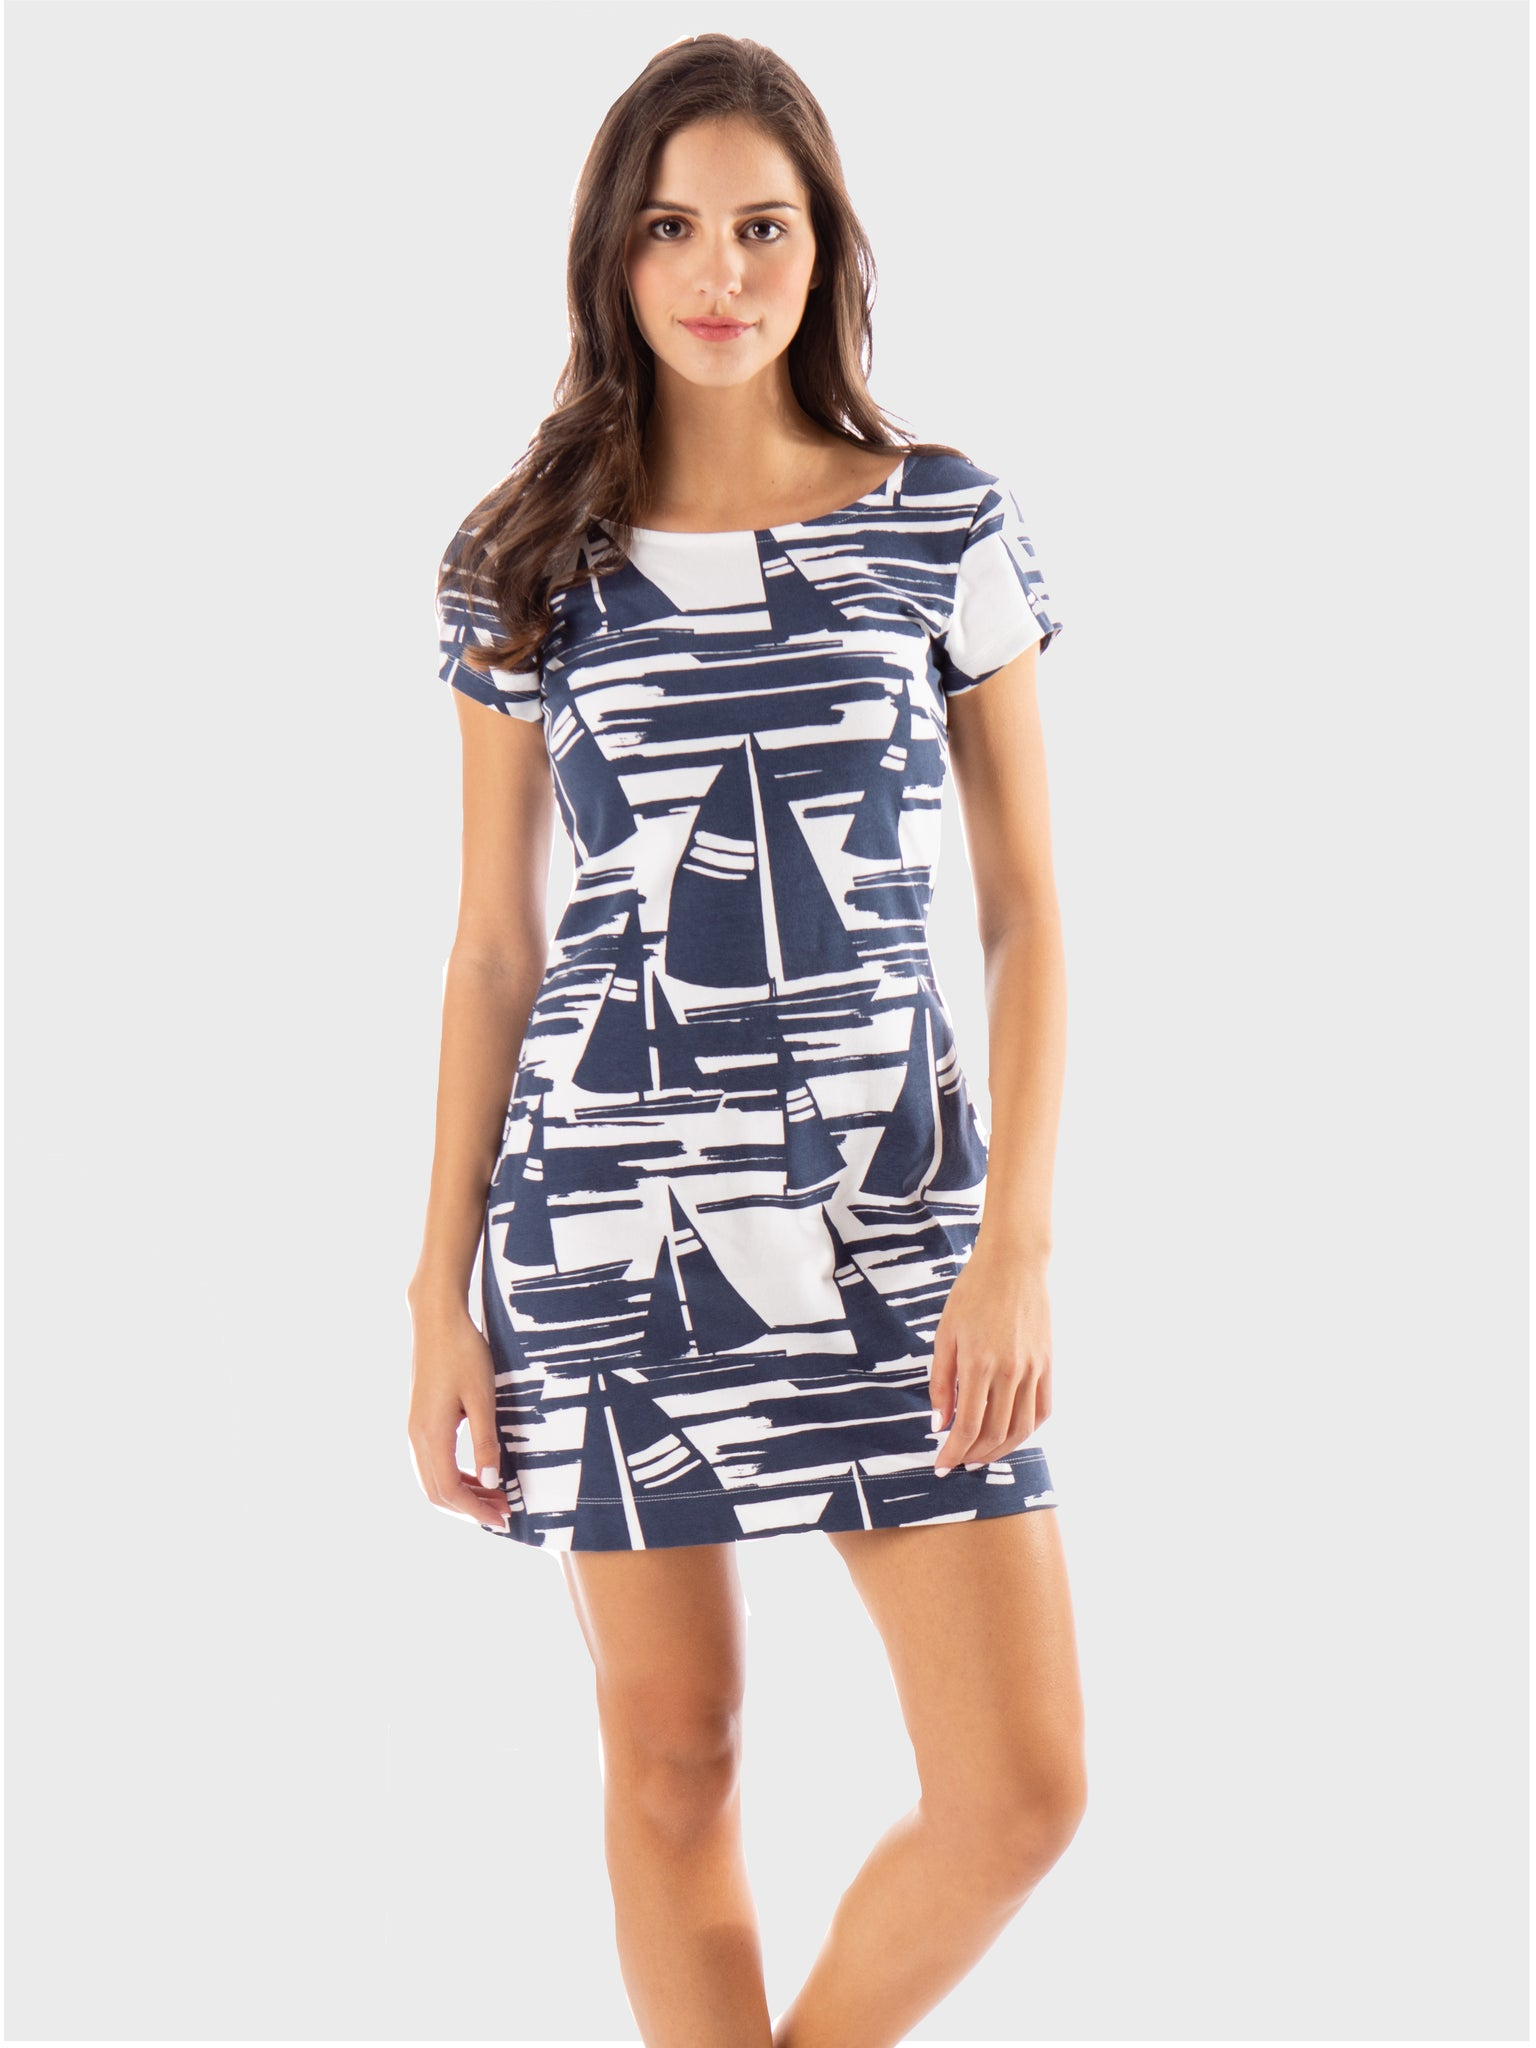 Addie T-Shirt Dress- Back to the Coast